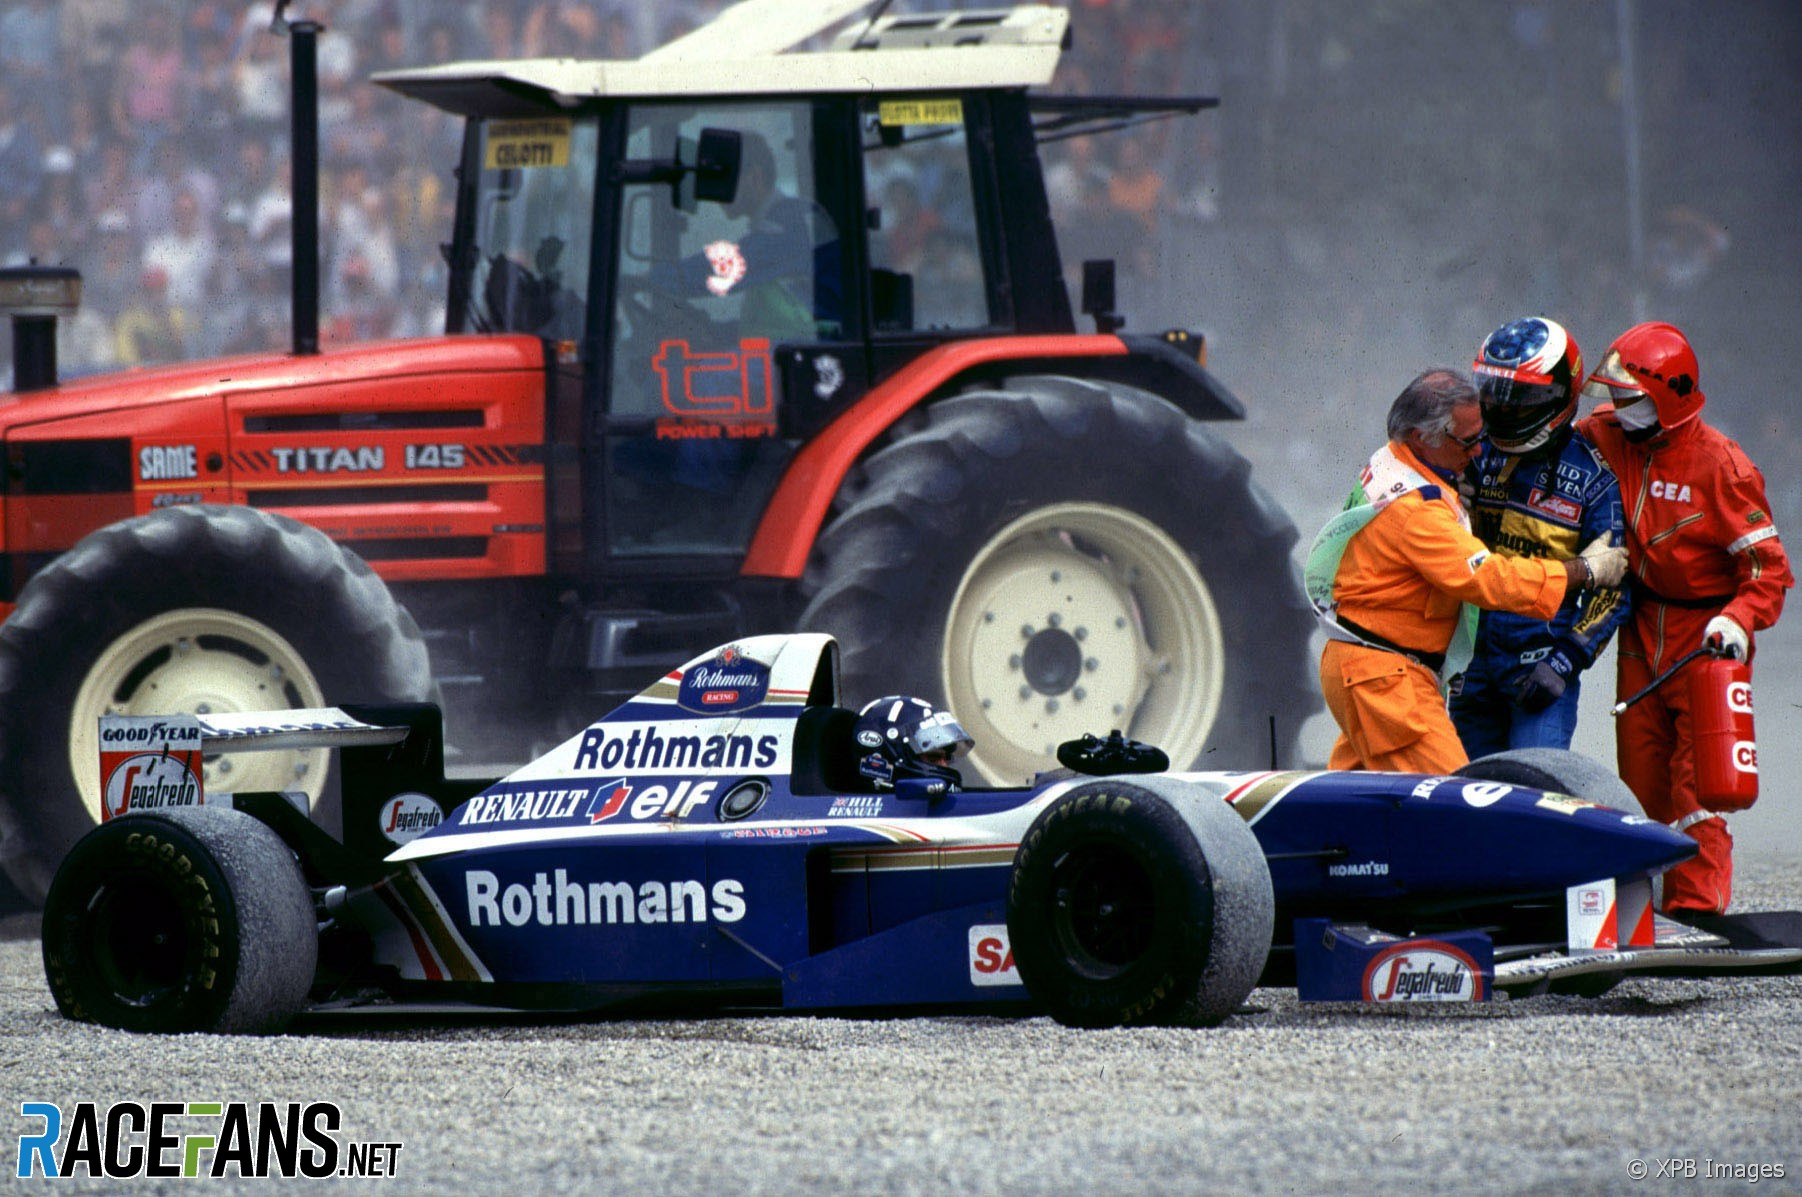 Marshalls keep Michael Schumacher away from Damon Hill after their collision, Silverstone, 1995